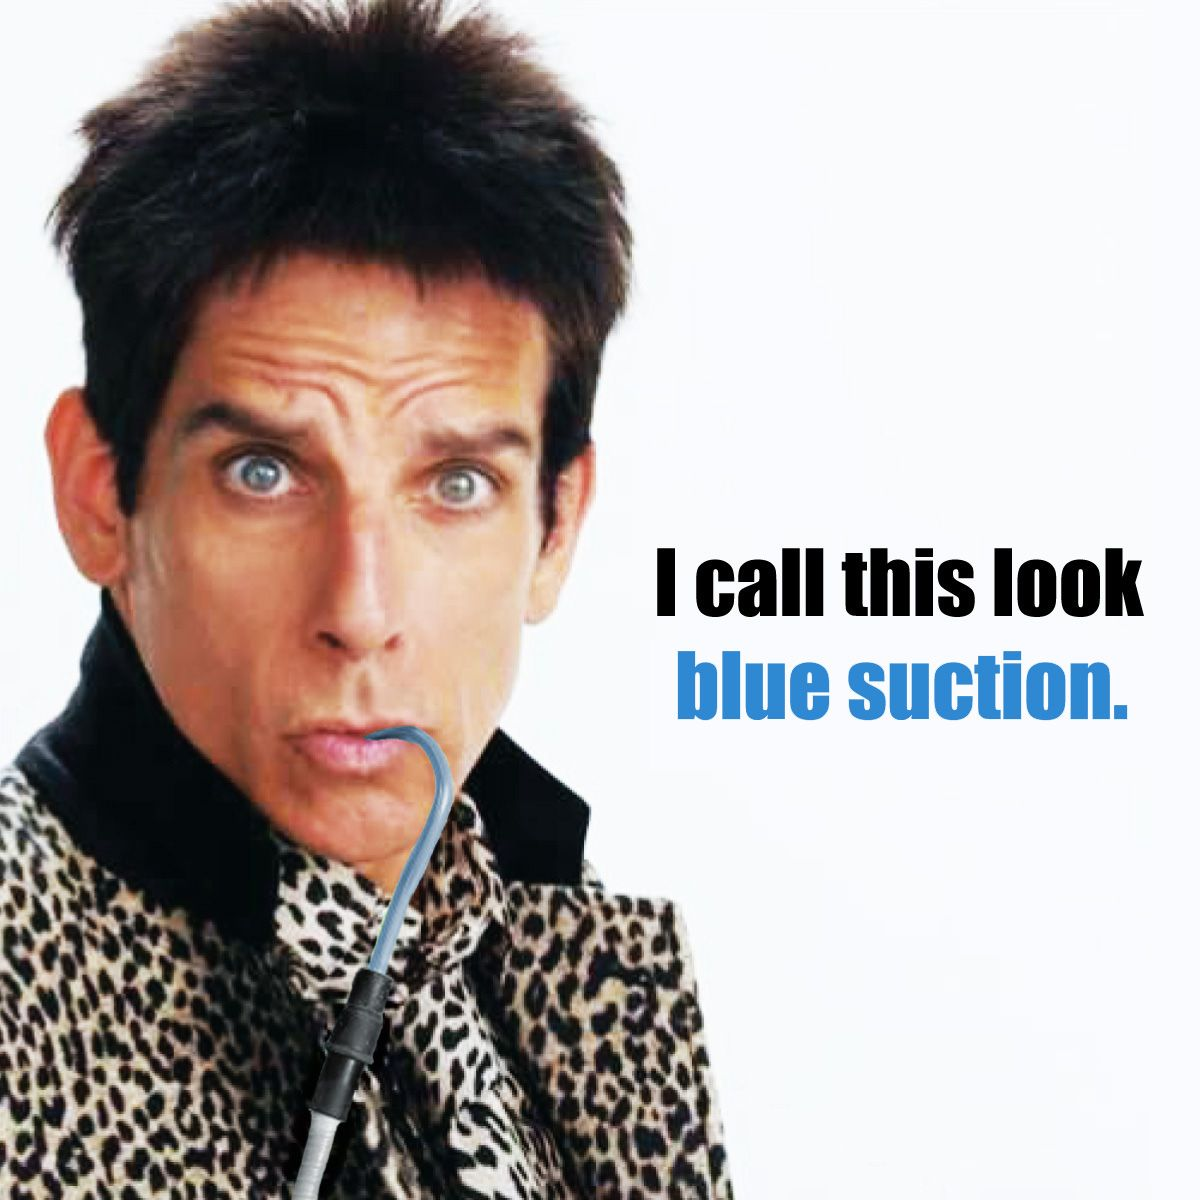 The Key To Being Really Really Ridiculously Good Looking Proper Oral Care Are You Seeing Zoolander 2 This Wee Dental Assistant Humor Dental Fun Dental Humor